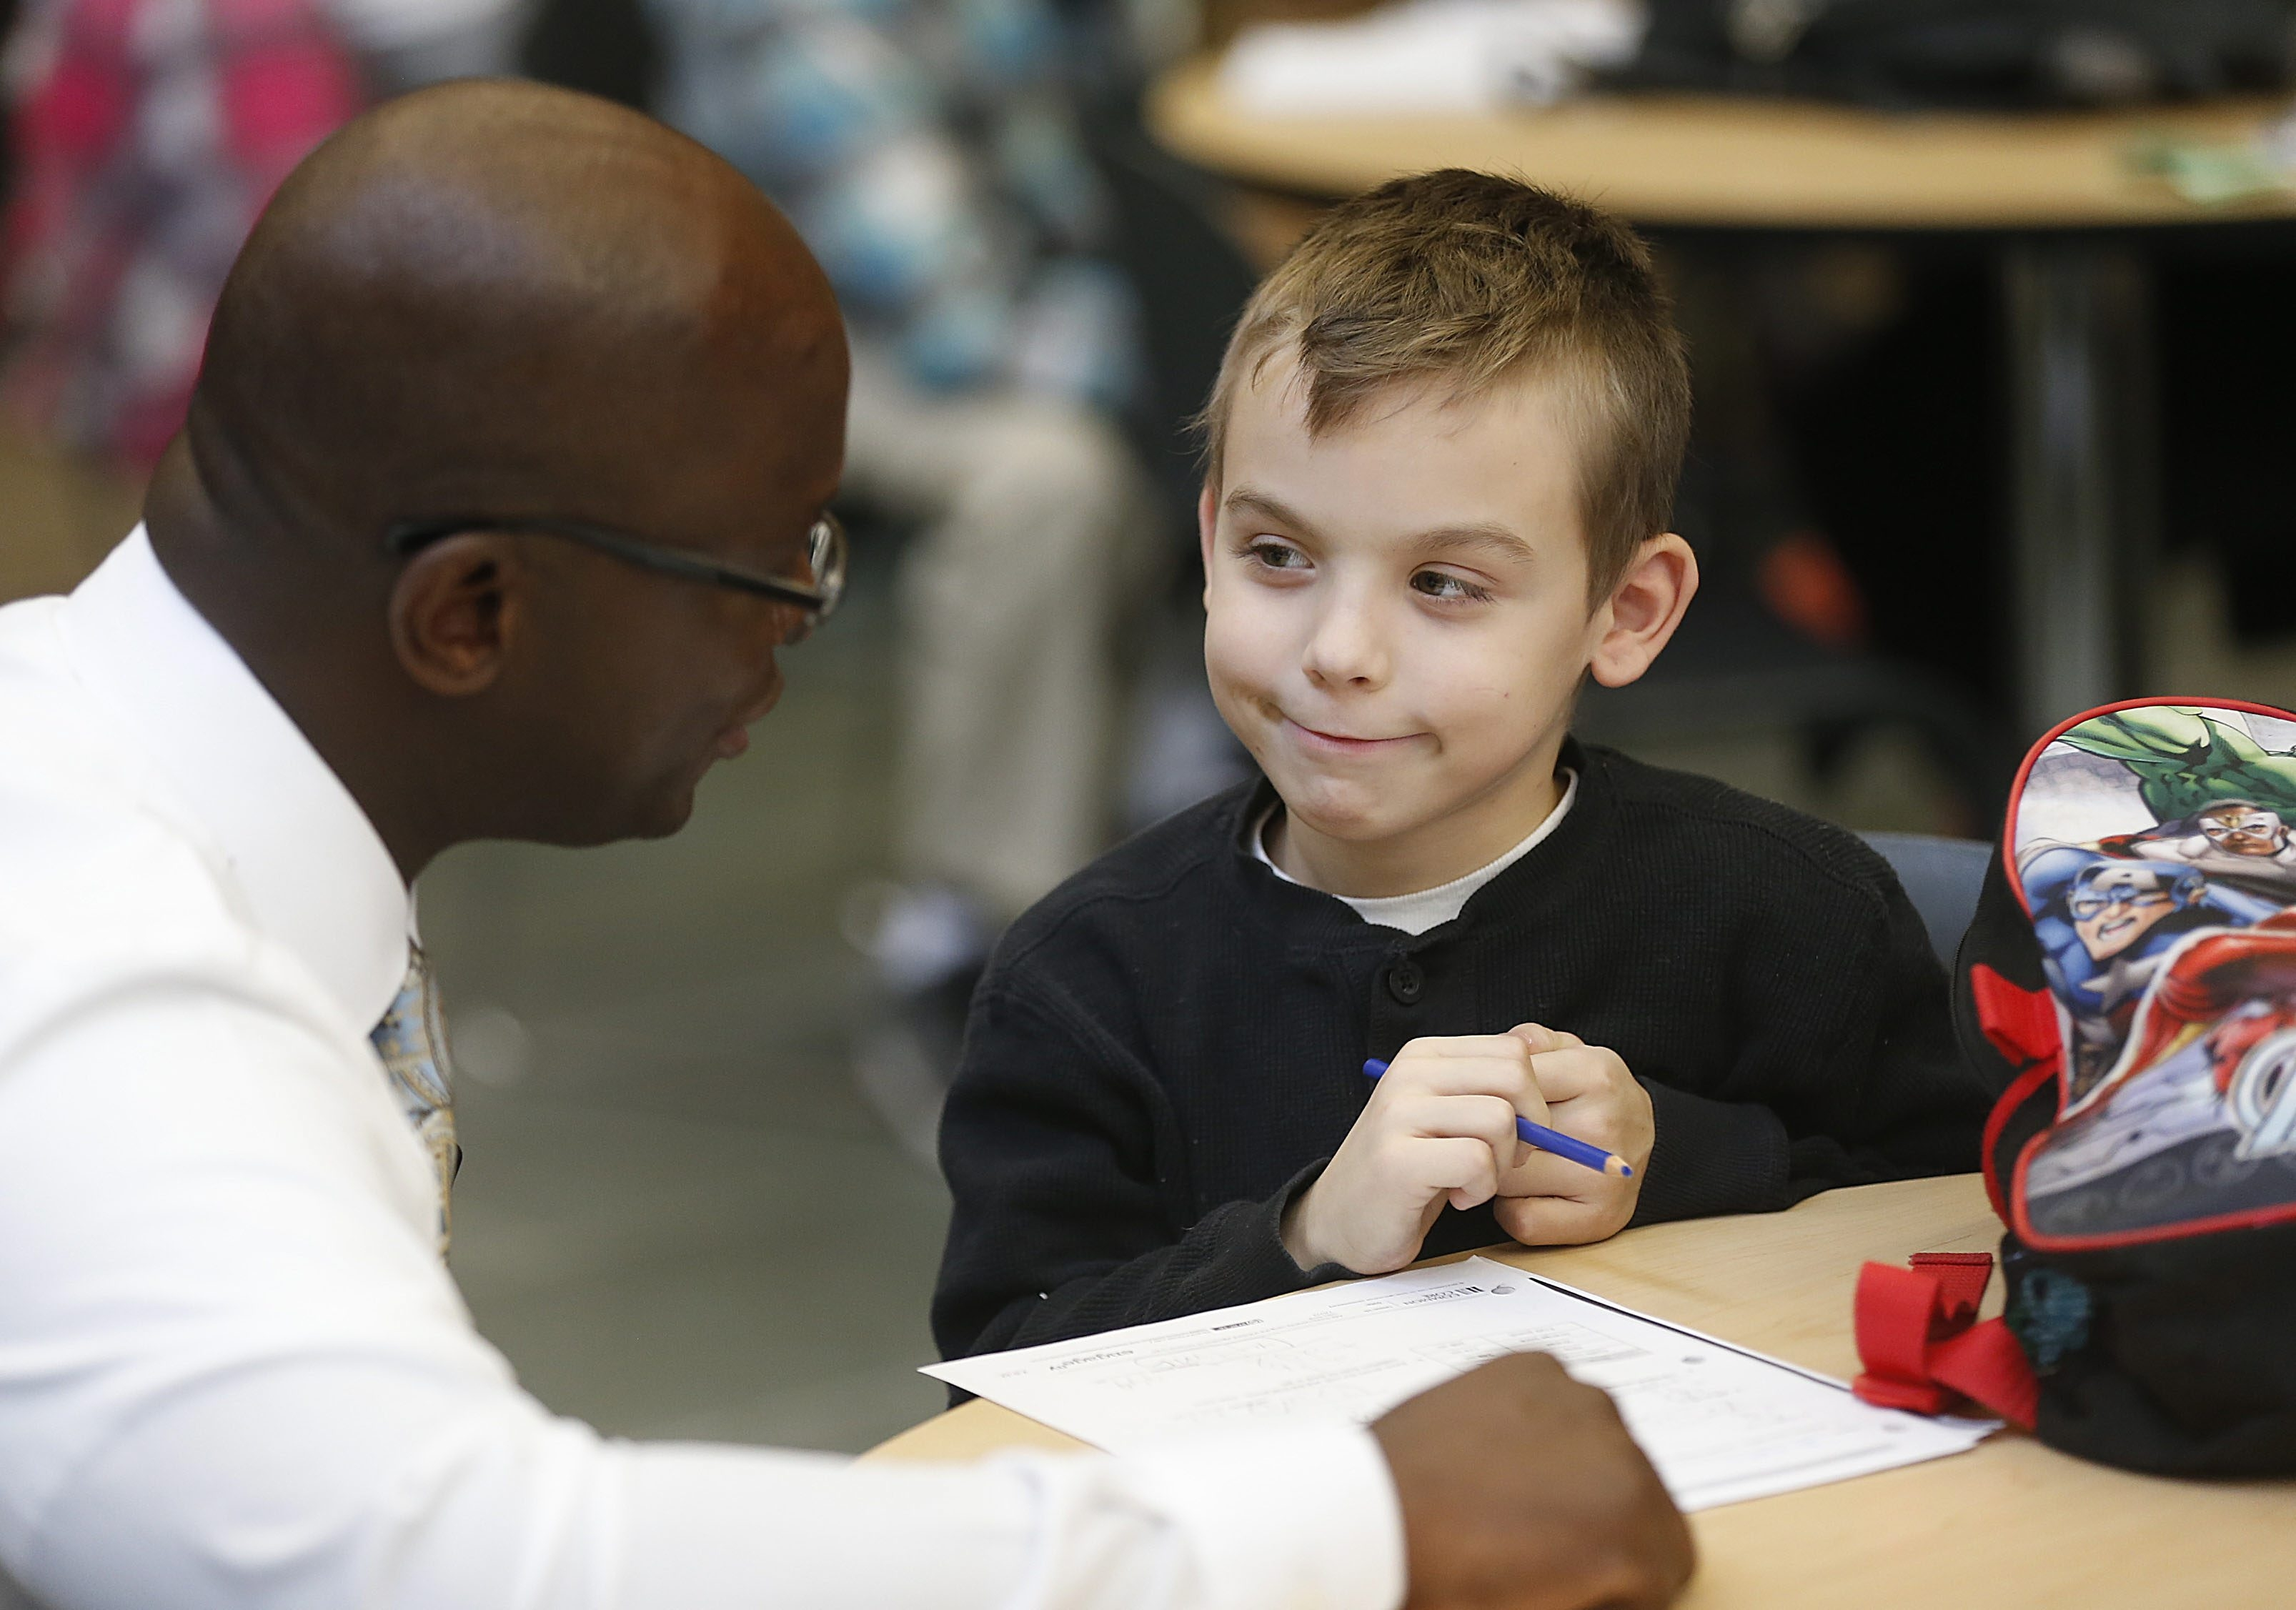 Principal Gregory Mott visits with third-grade student Steven Stroh, 8, during an after-school program at William J. Grabiarz School of Excellence. The school saw some of the district's biggest gains on state tests.